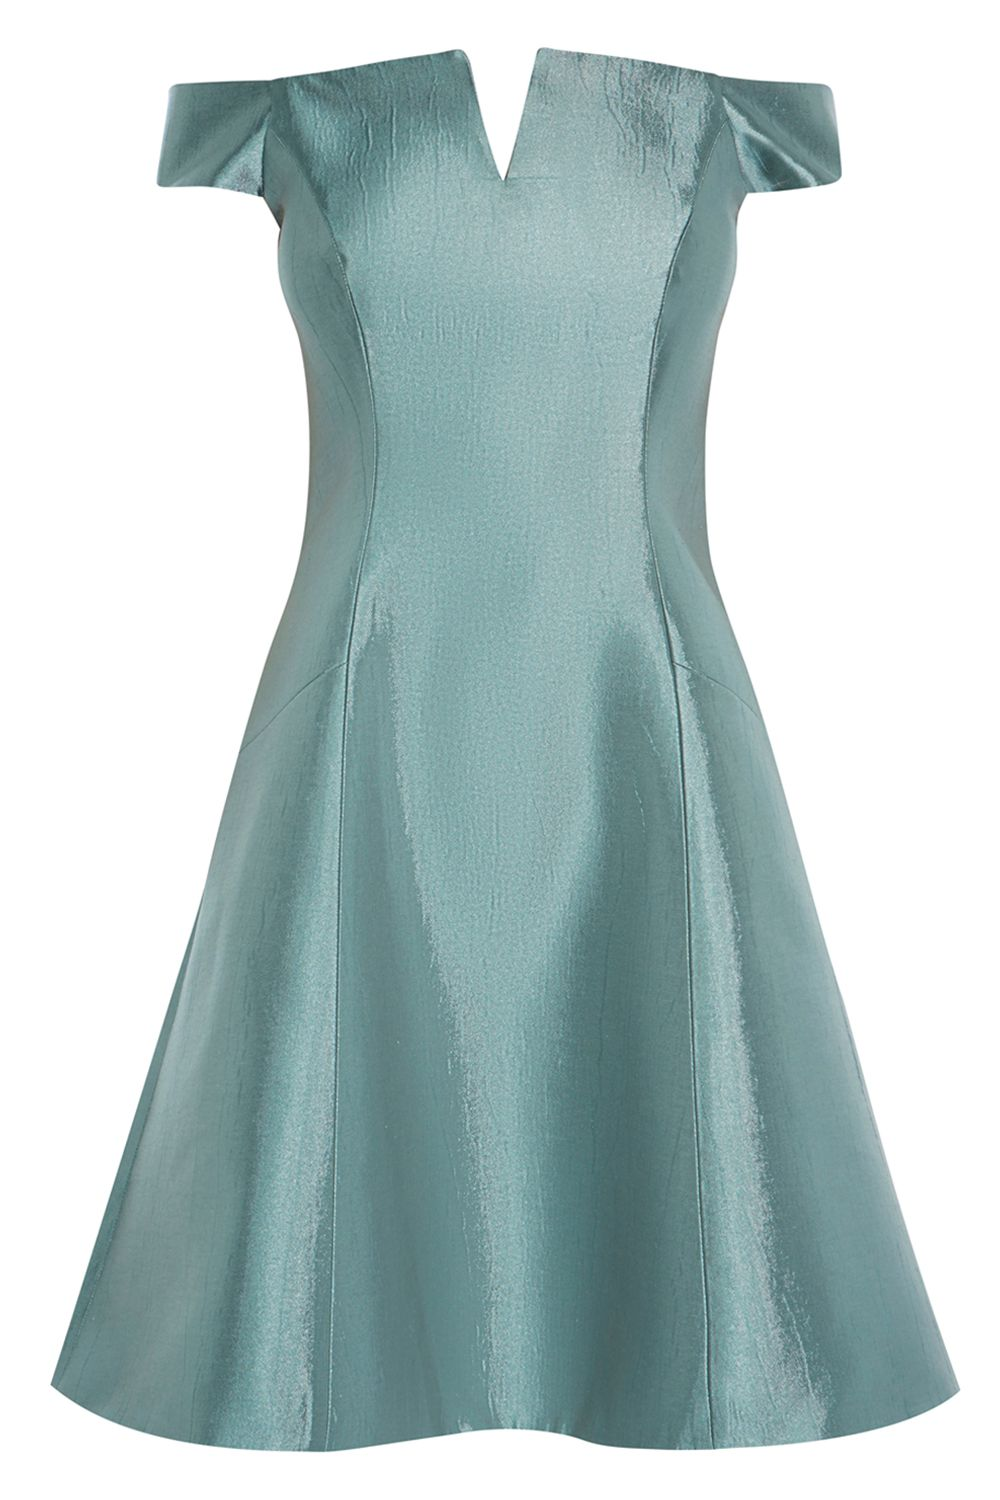 Coast Armelle Green Dress, Green